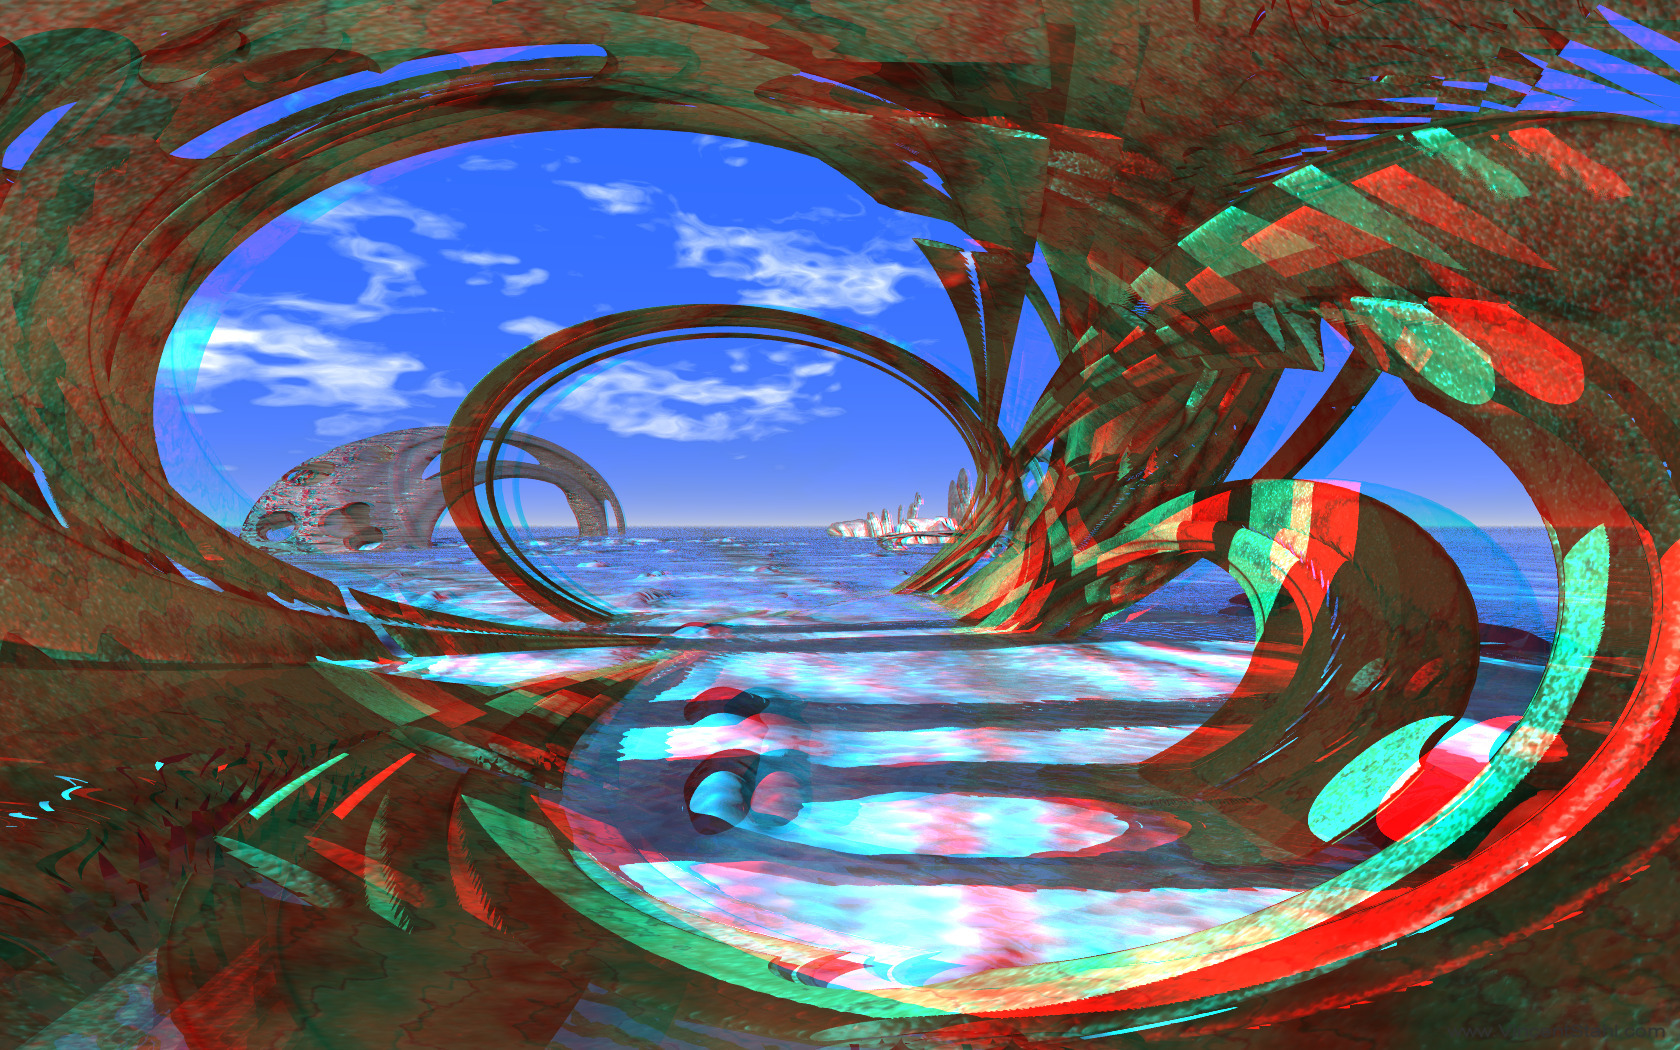 Neolithic Caribbean - 3D stereo anaglyph color